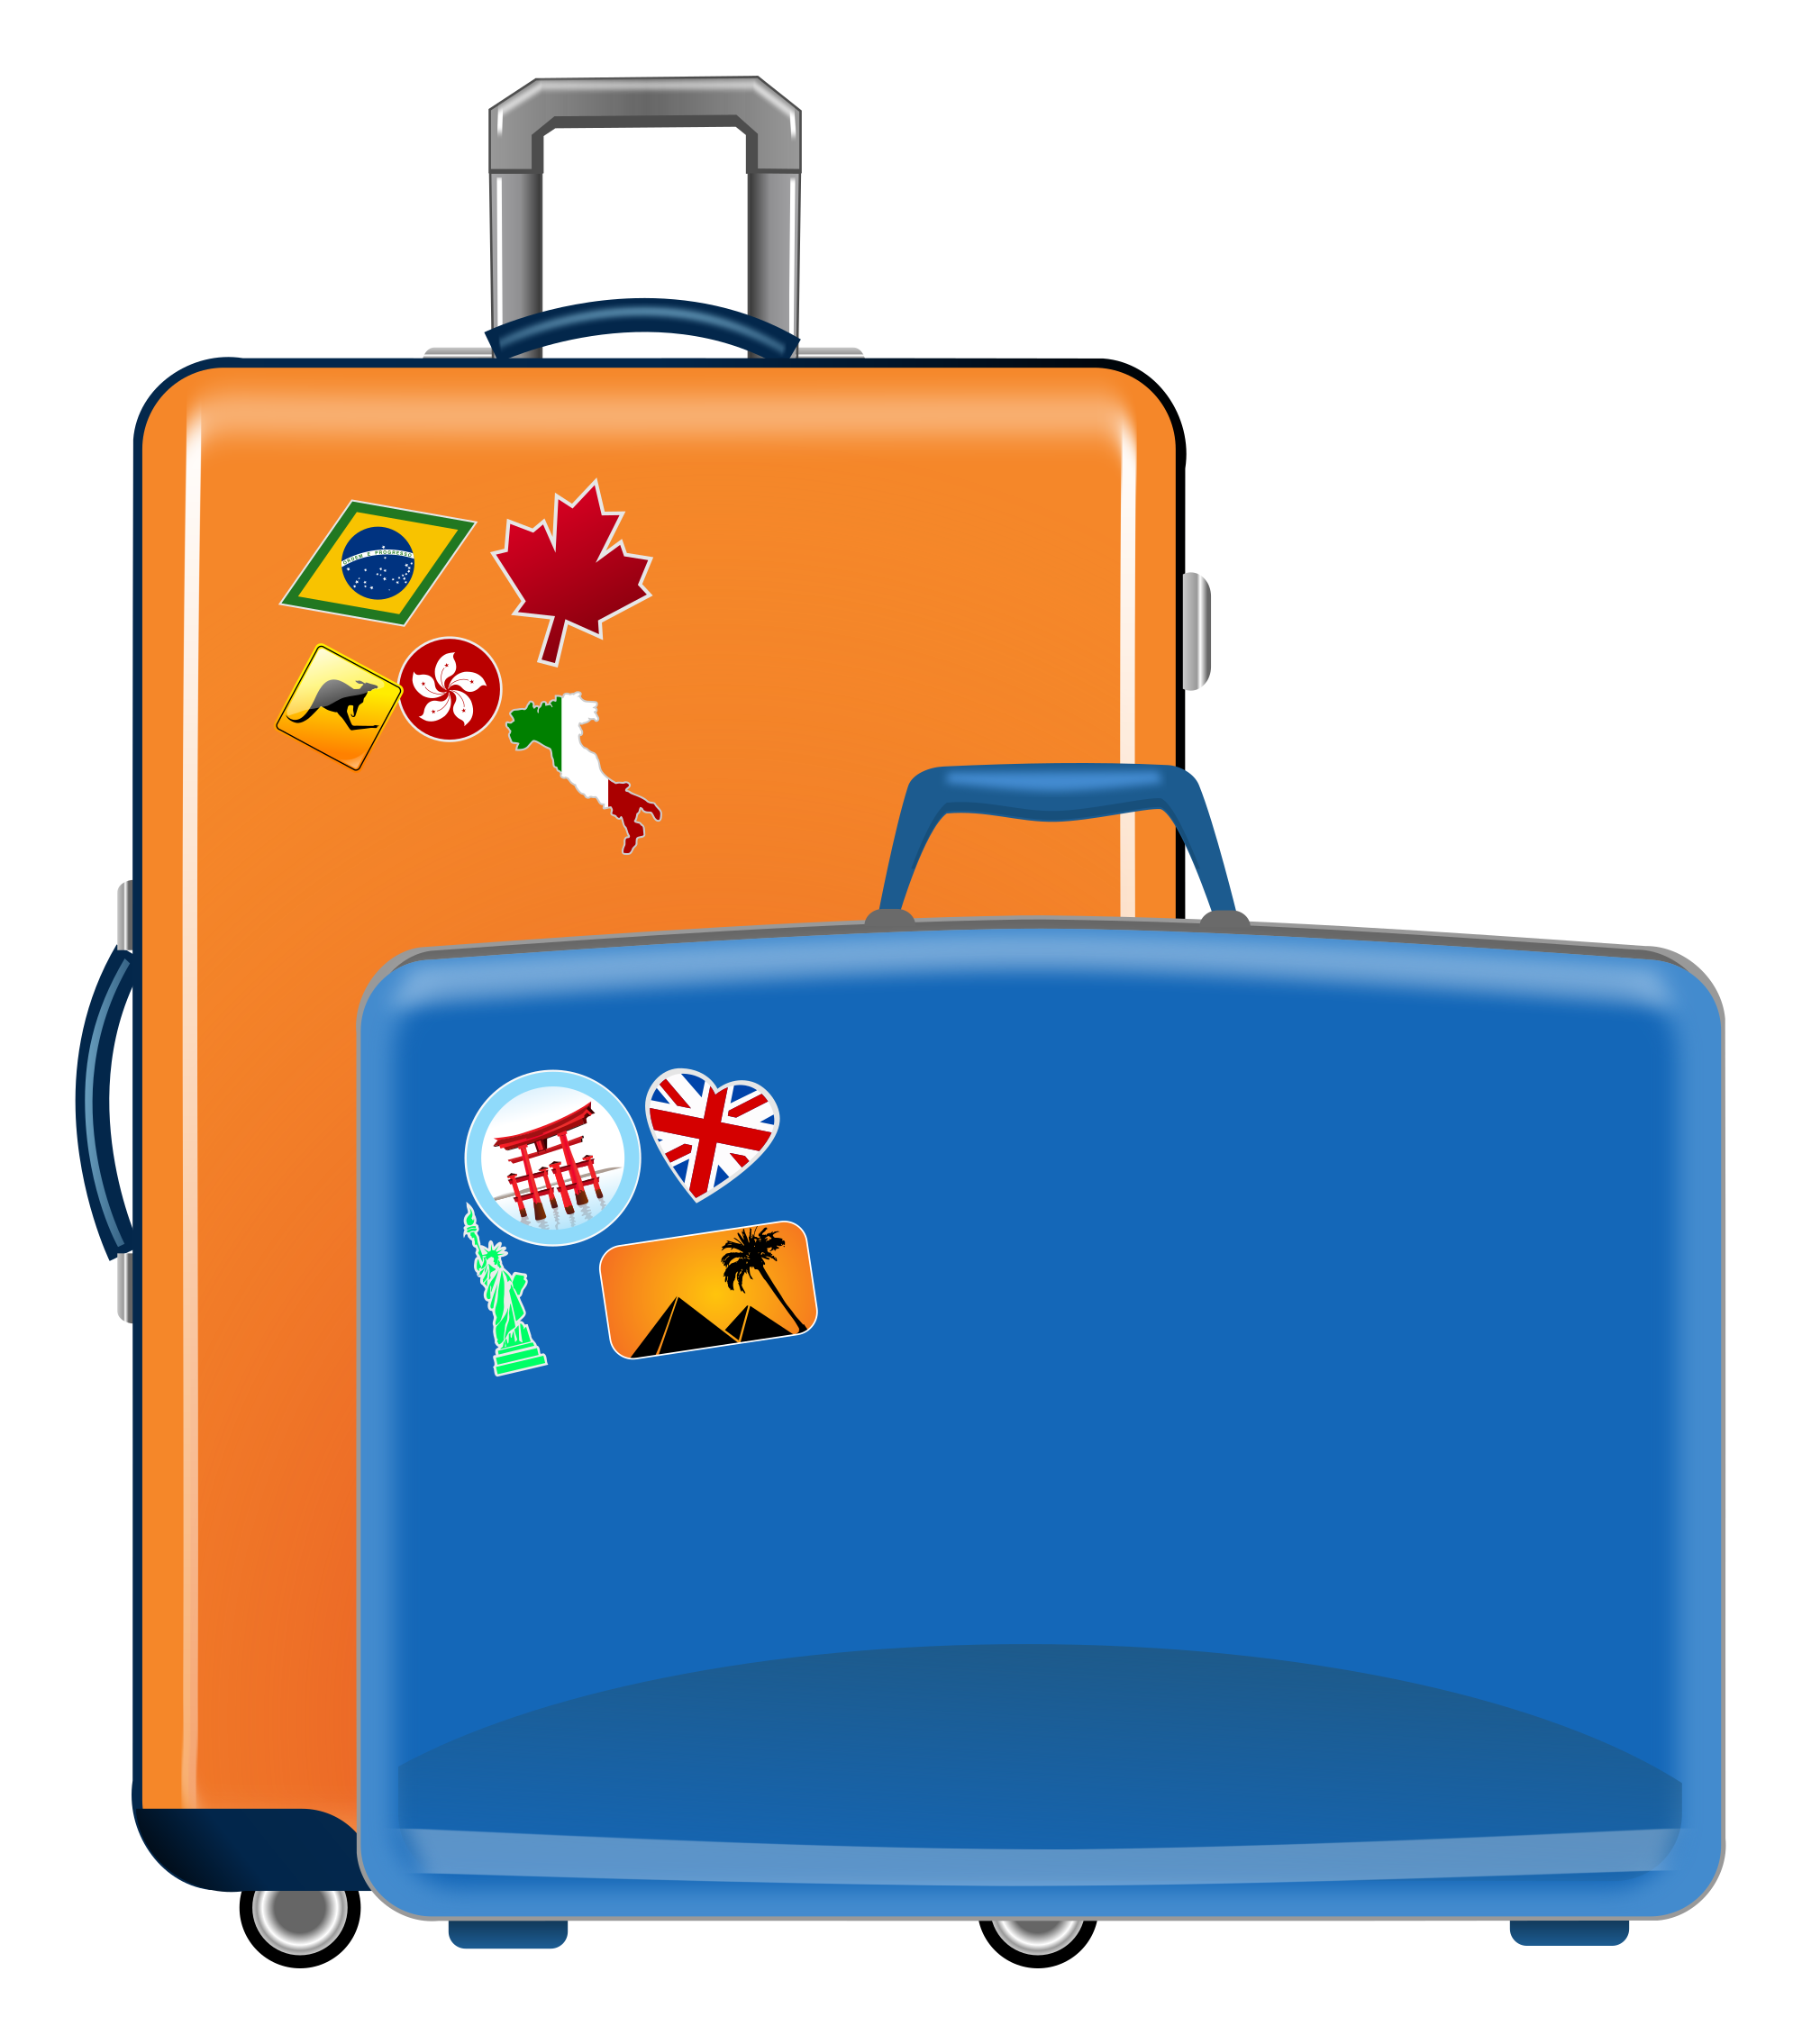 File suitcases svg wikimedia. Luggage clipart opened suitcase